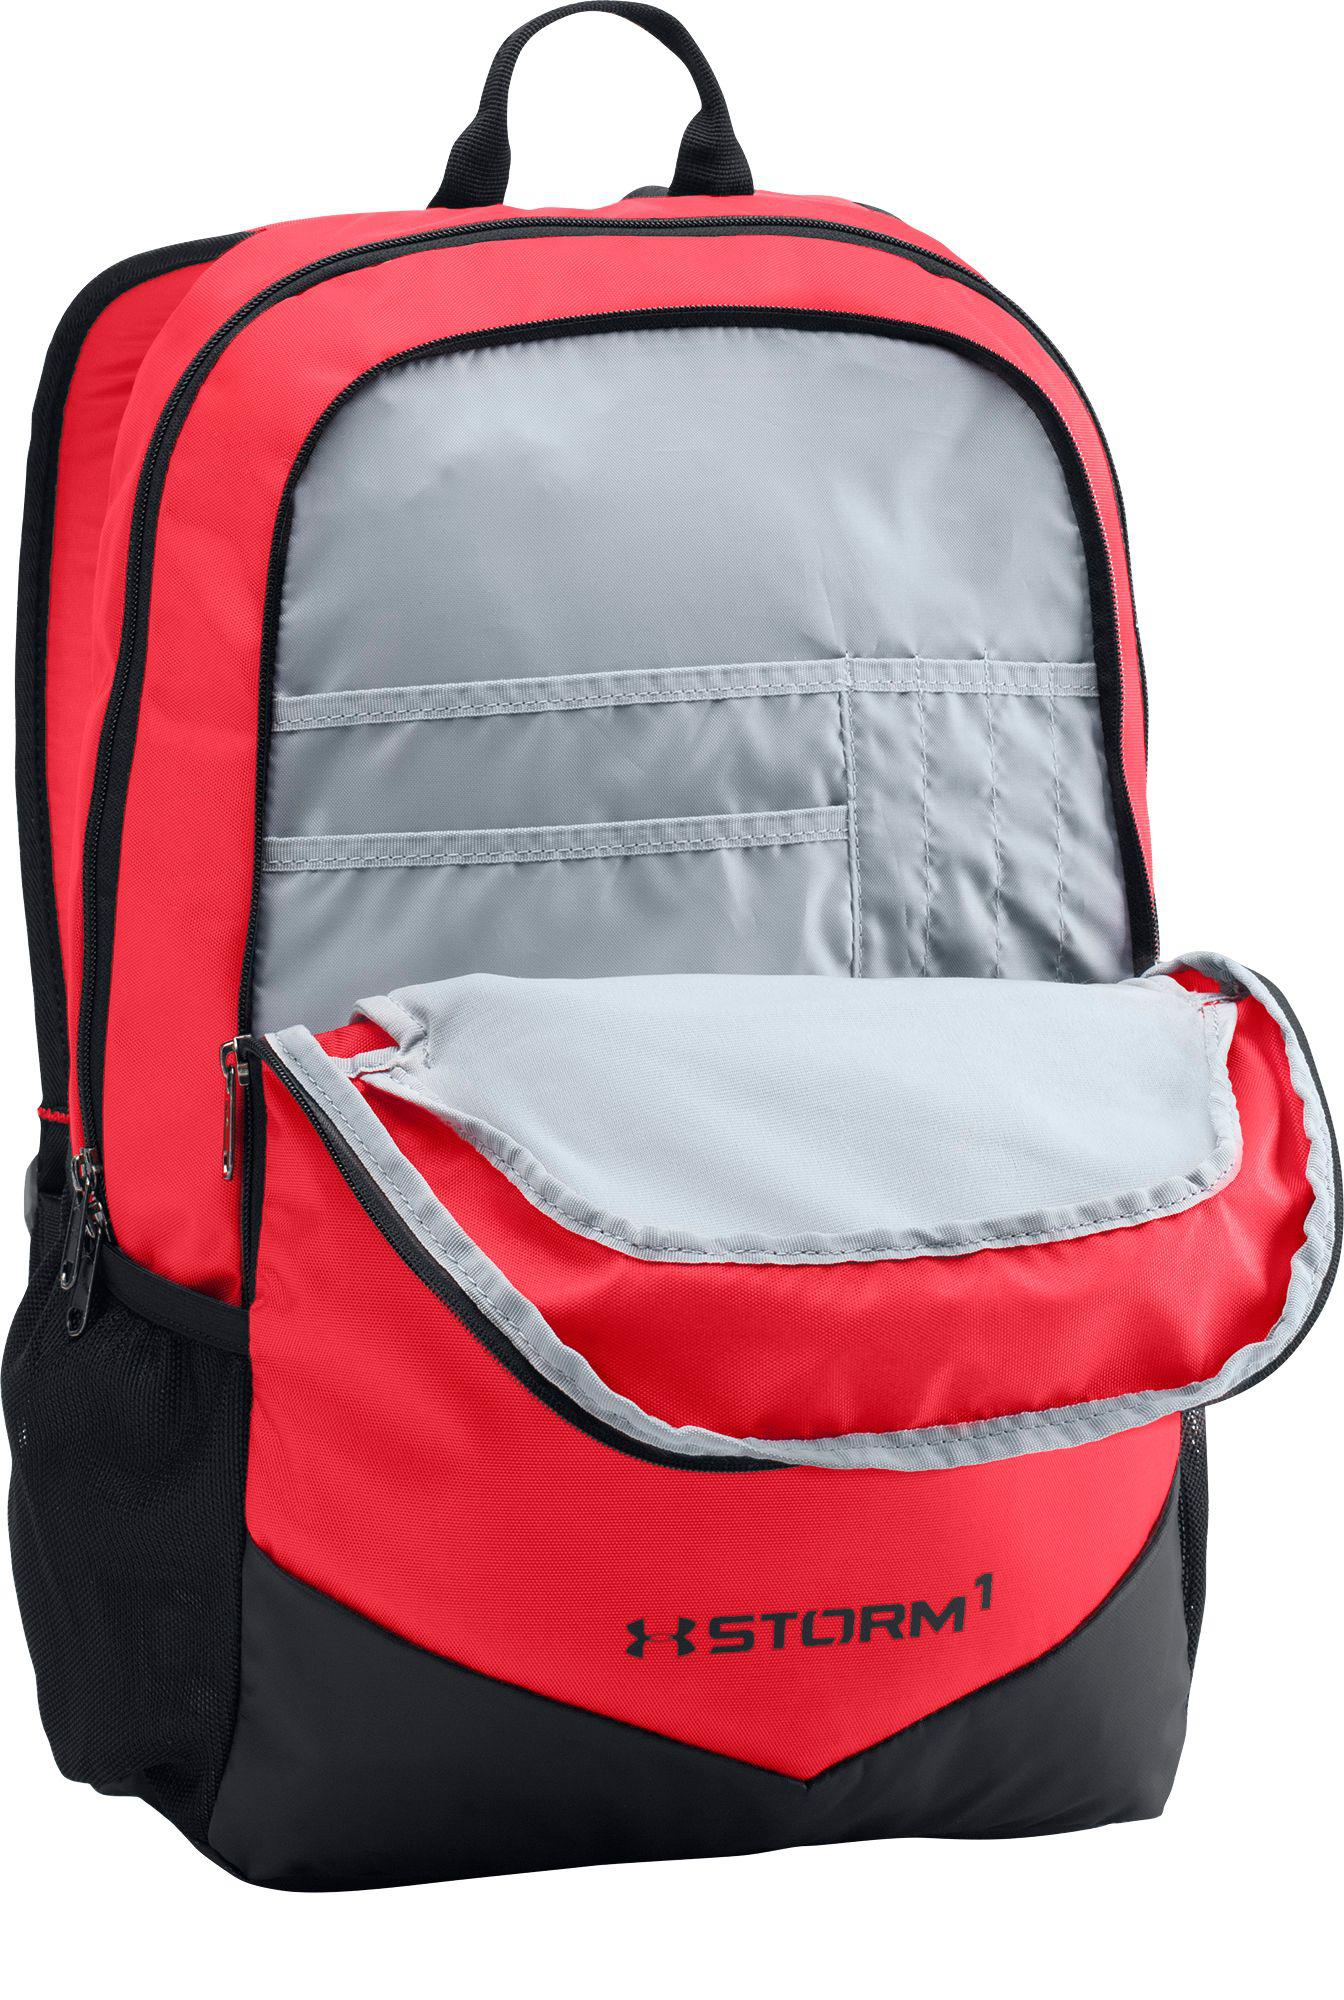 54ab25e228 Lyst - Under Armour Youth Scrimmage Backpack in Red